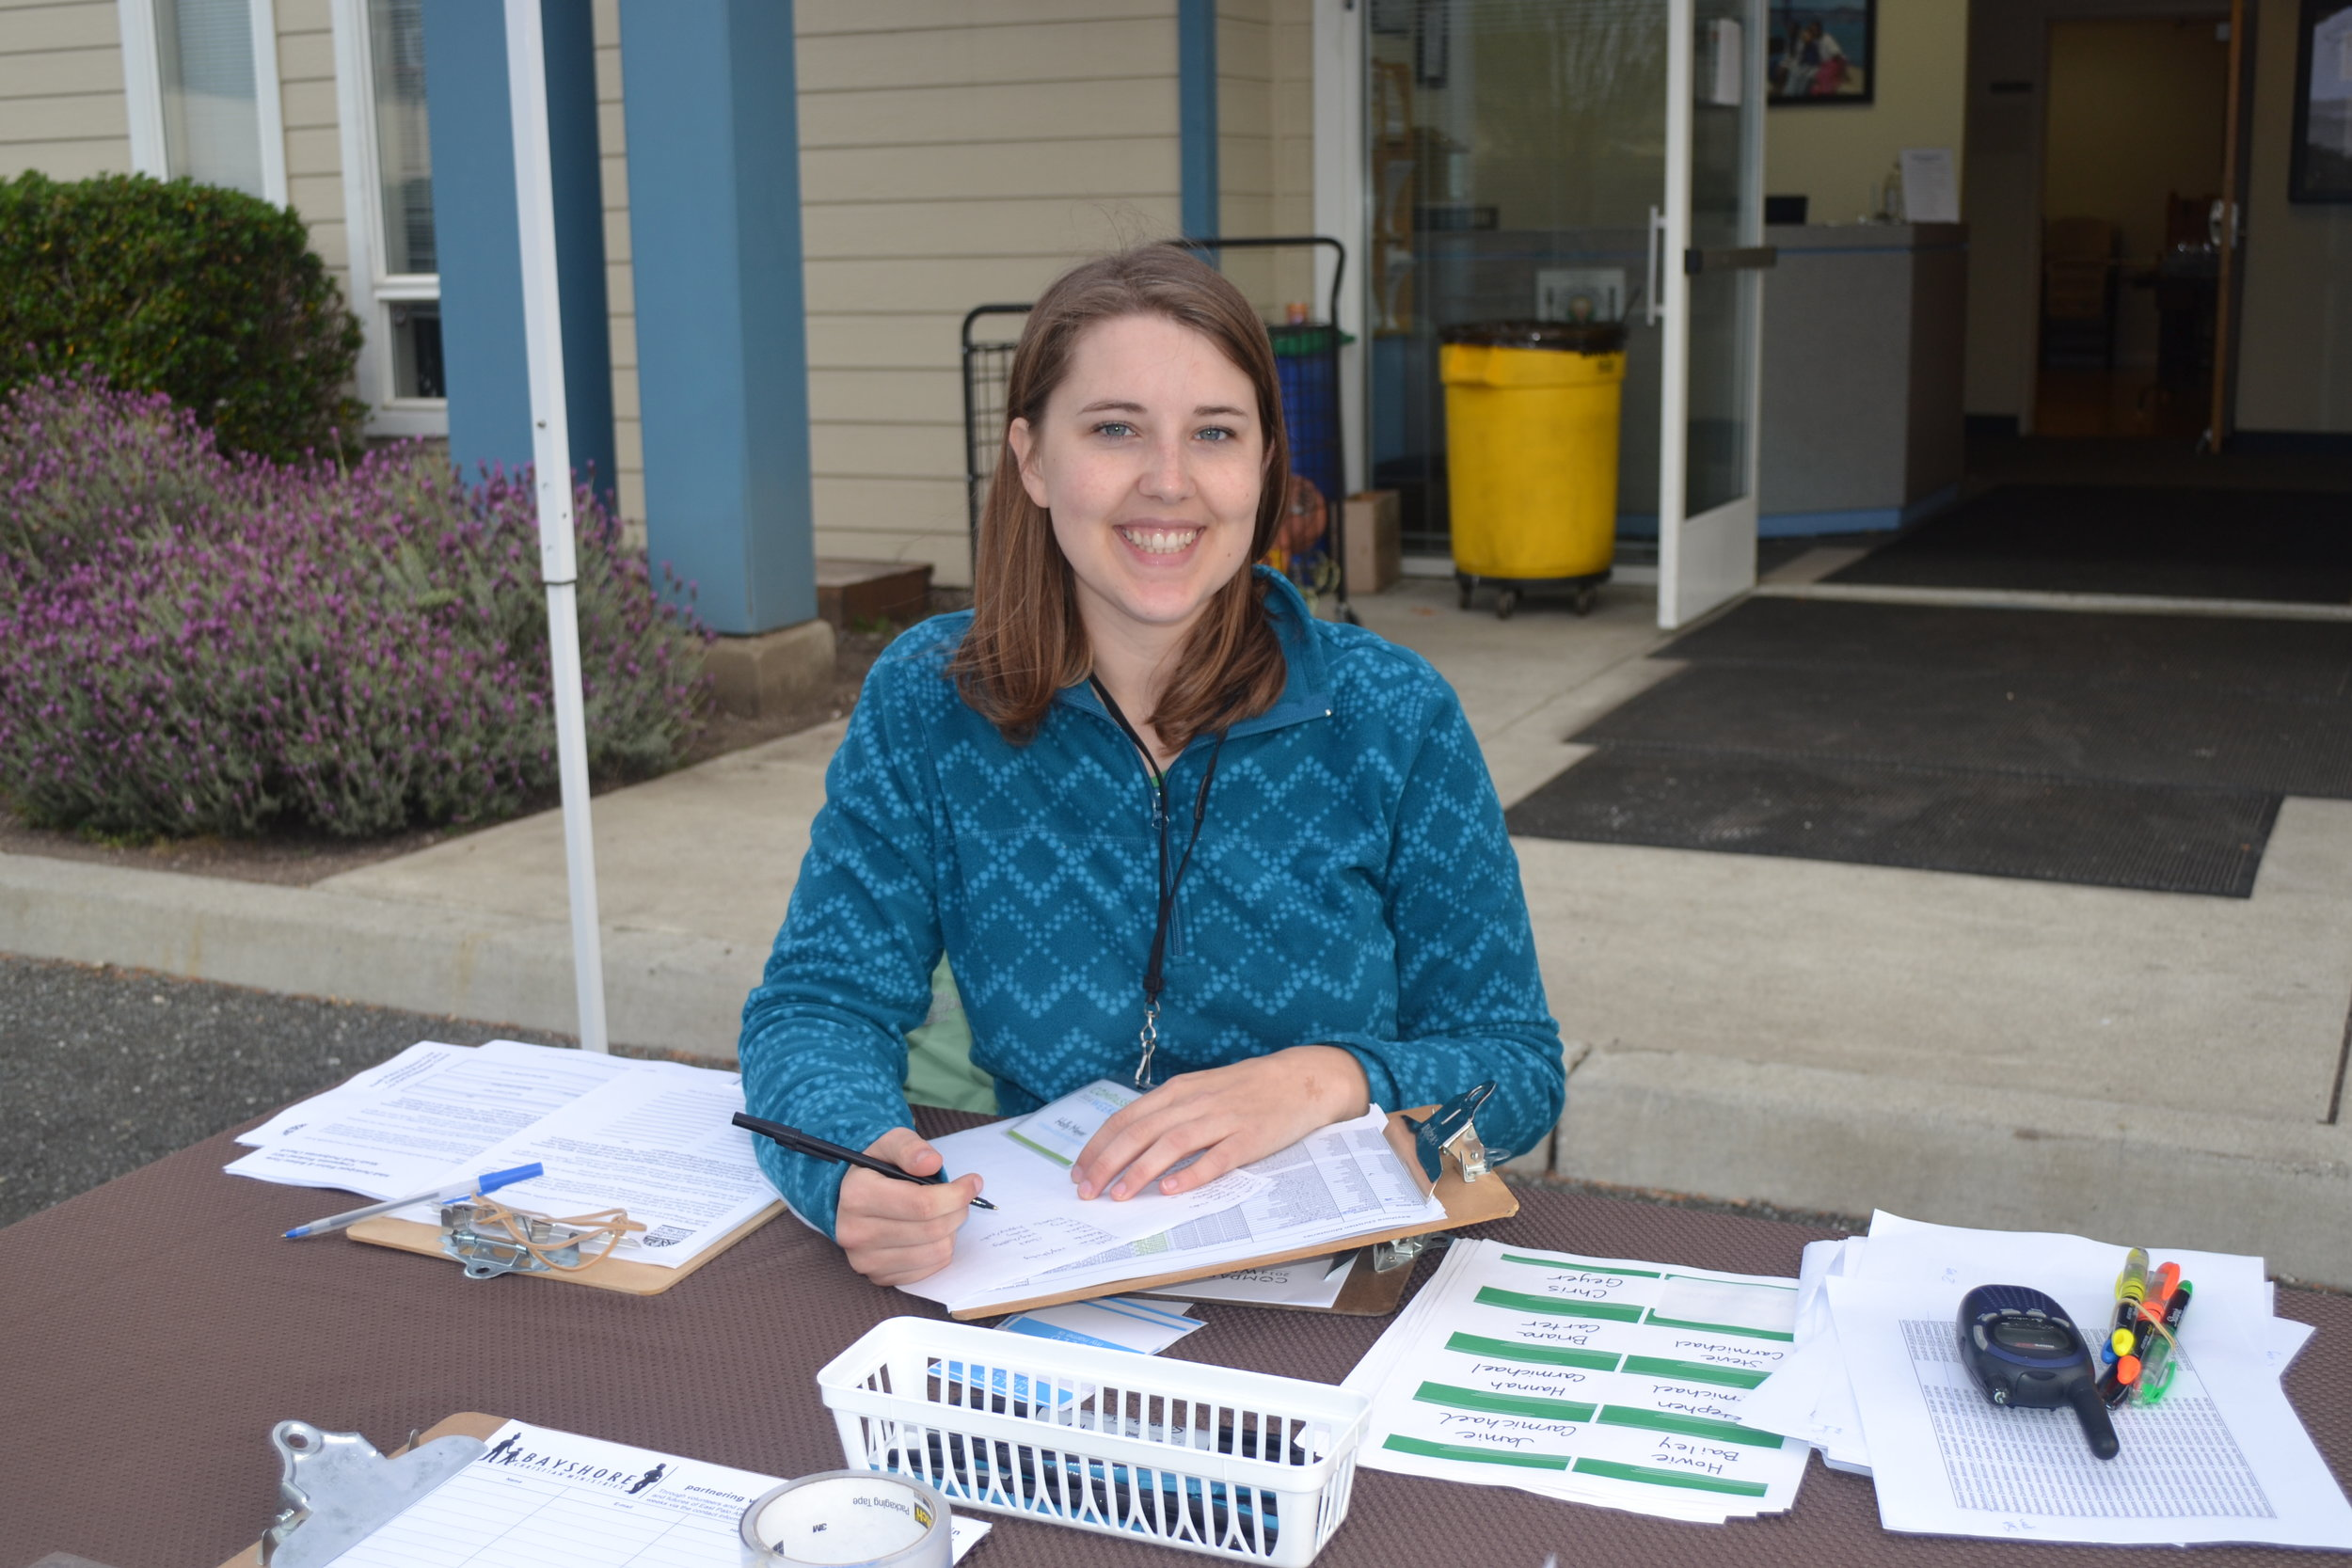 Compassion Weekend - Here Holly heads up registration during Compassion Weekend.